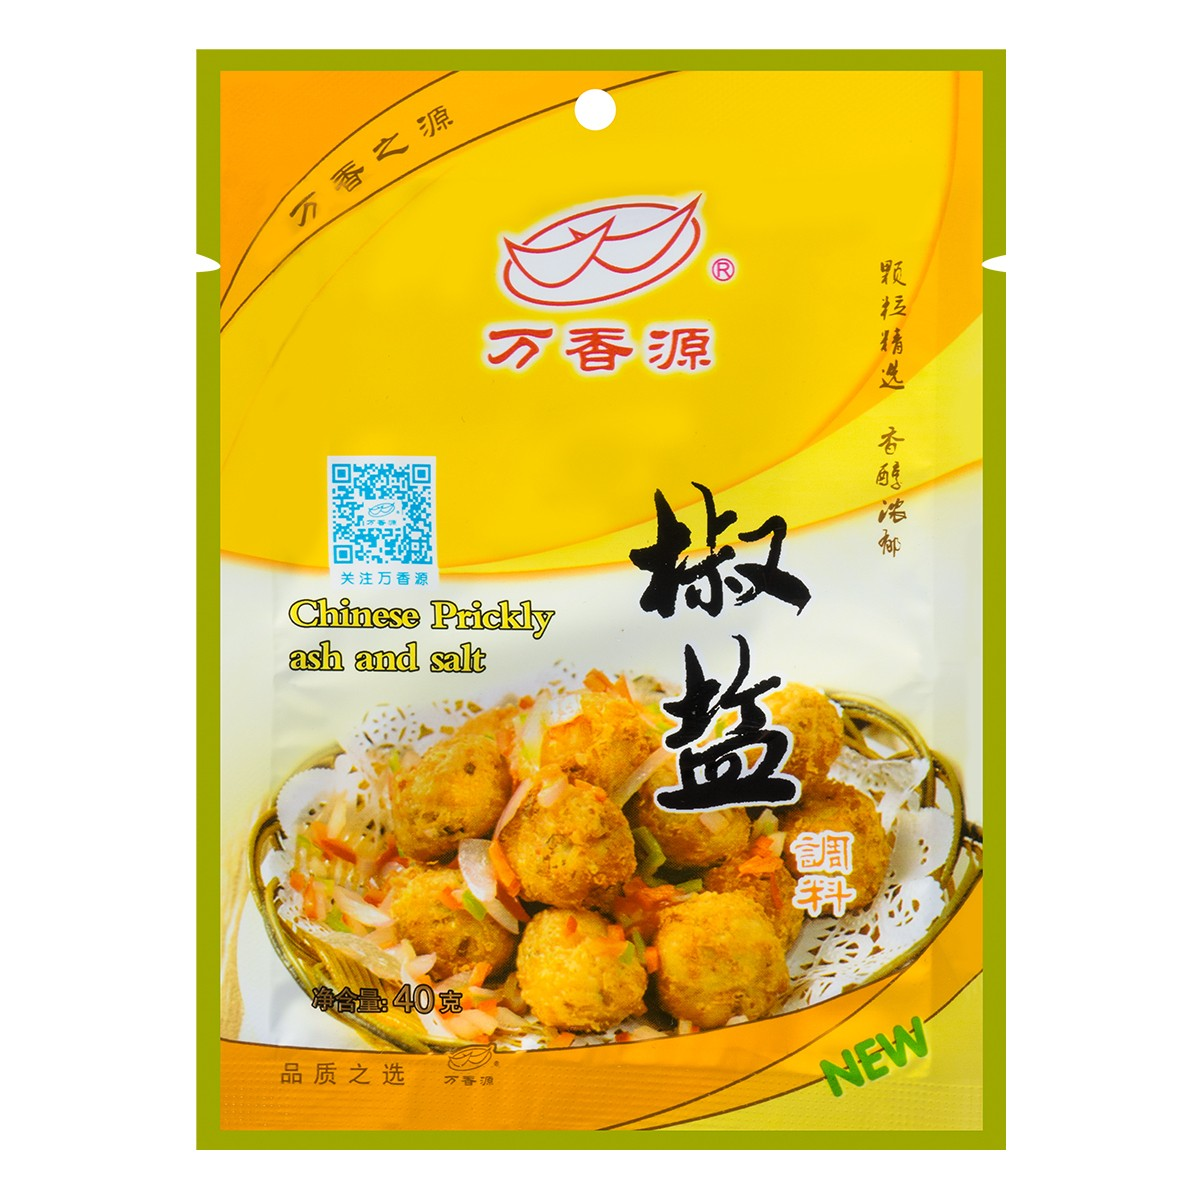 WANXIANGYUAN Chinese Prickly Ash and Salt 40g